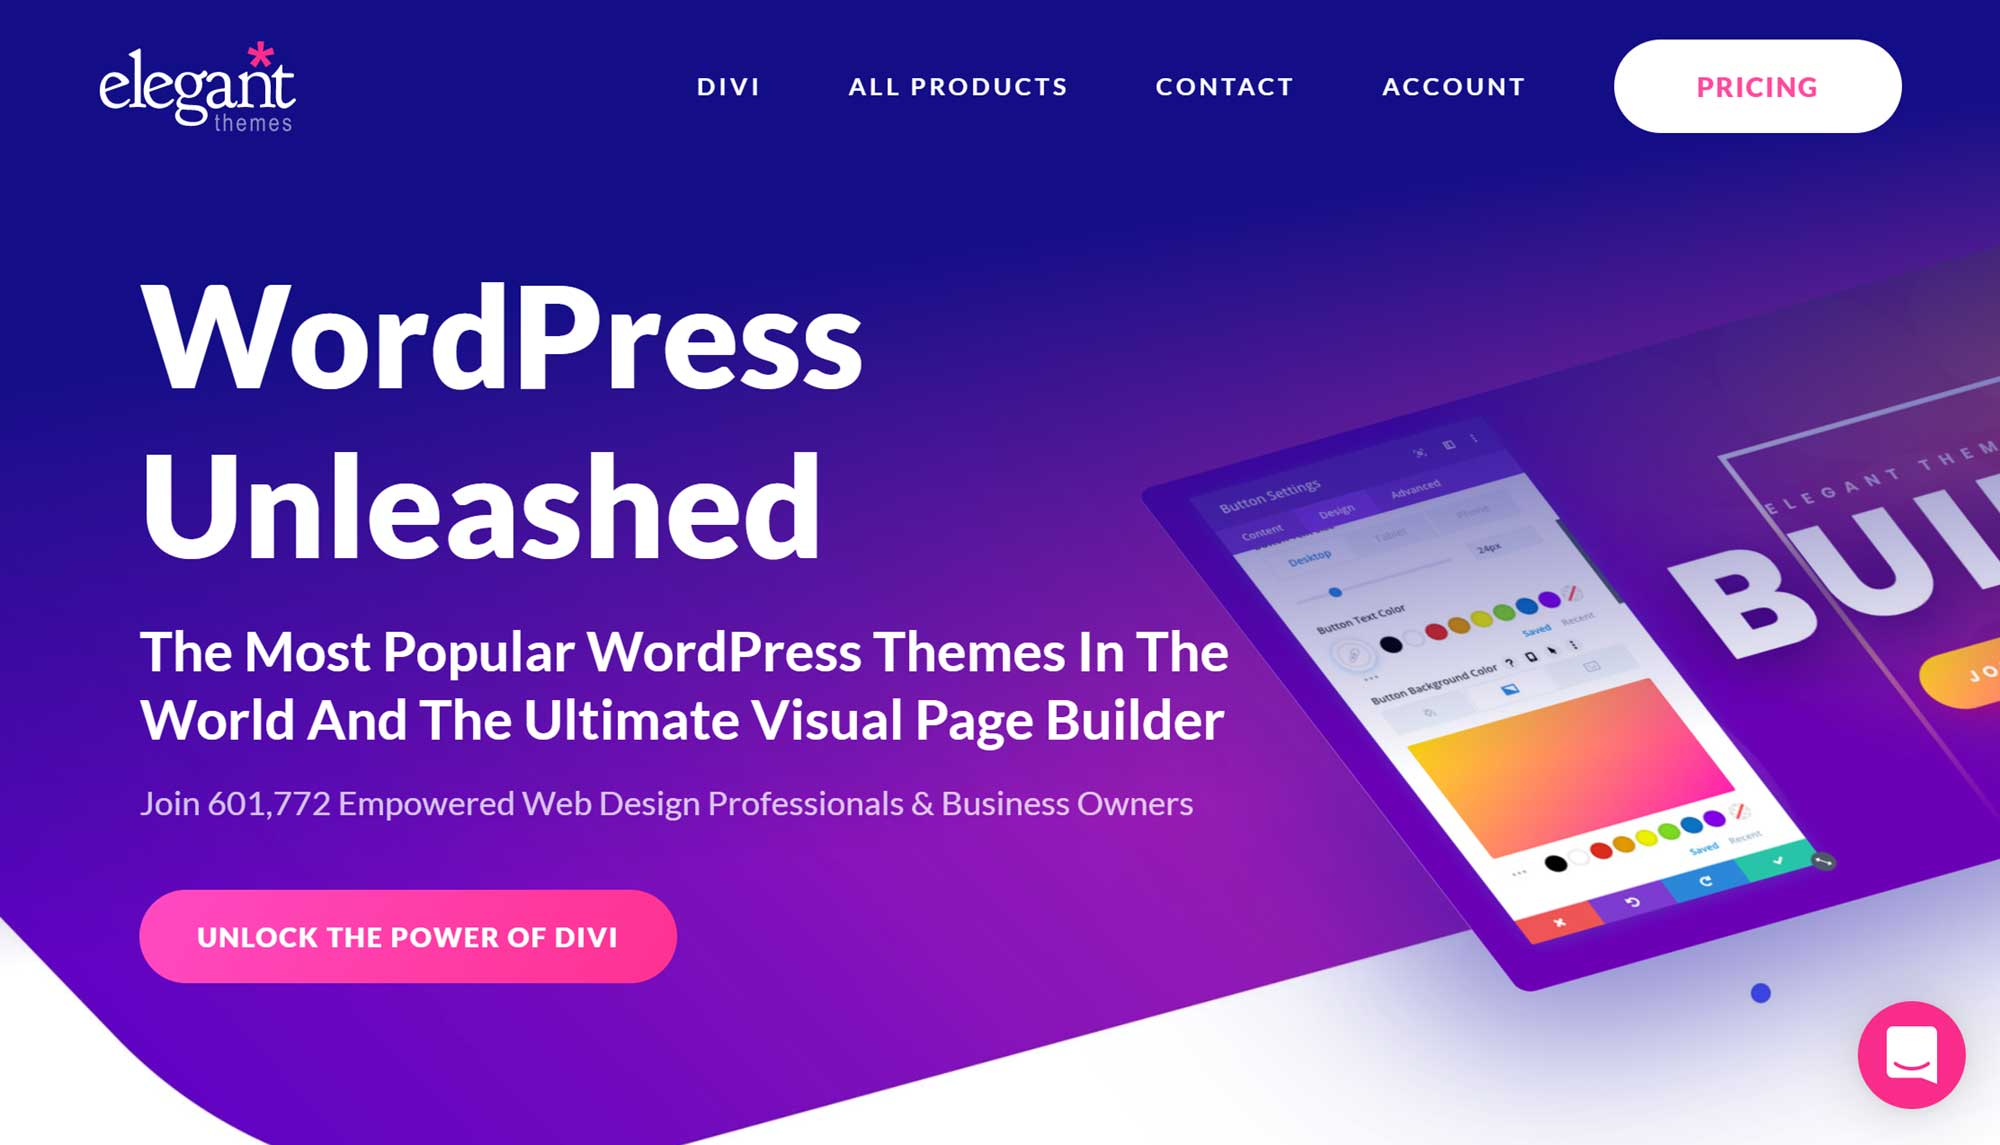 Buy  Elegant Themes WordPress Themes Deals Online